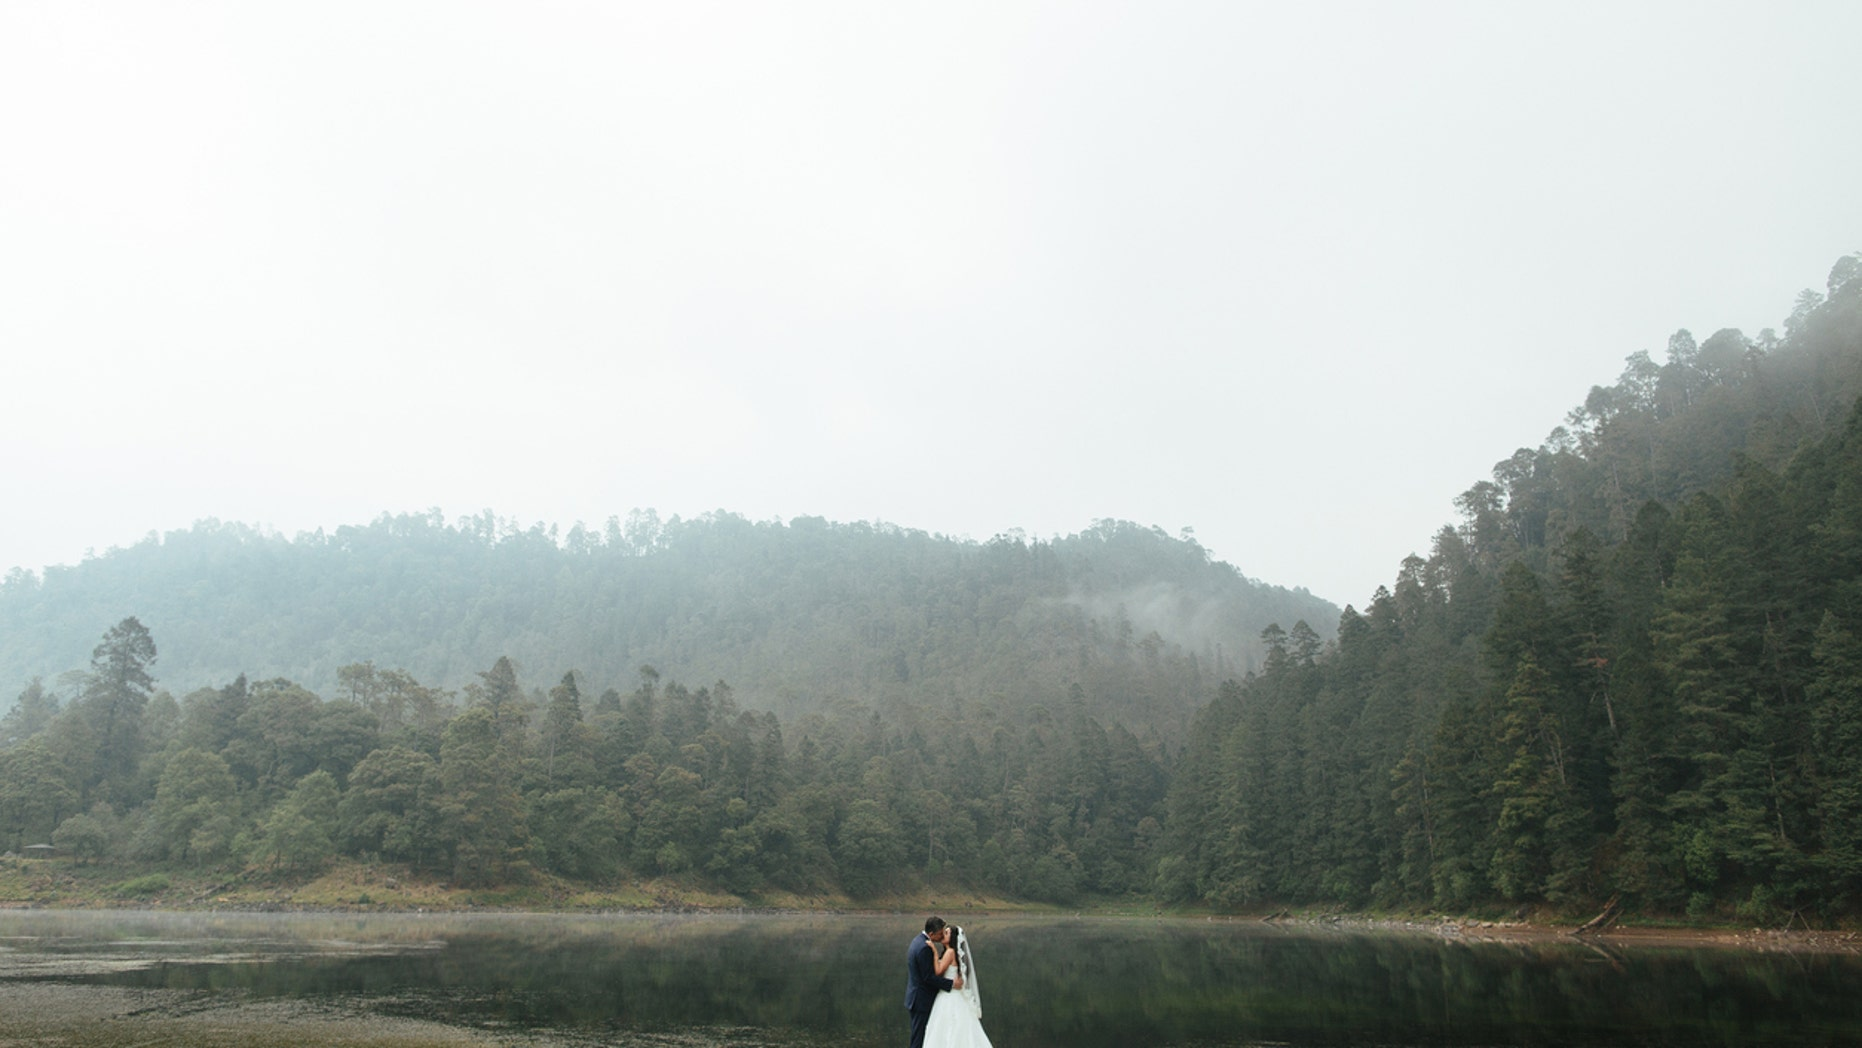 """Looking for a special place to tie the knot? We've rounded up unique and beautiful wedding venues that will have you ready to say """"I do."""""""